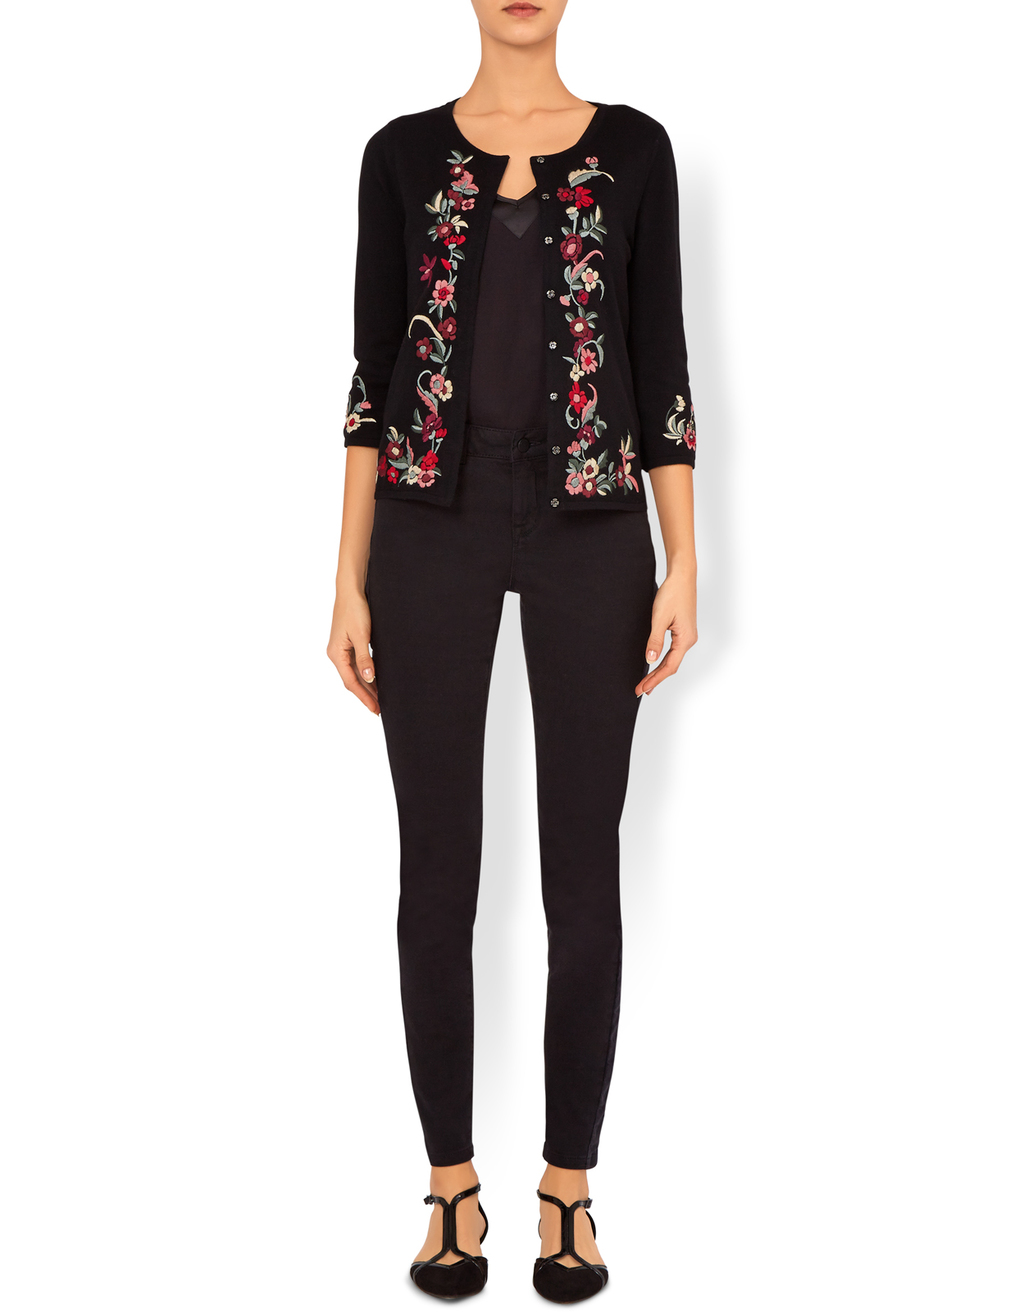 Beth Blooms Embroidery Cardigan - pattern: plain; neckline: collarless open; style: open front; secondary colour: hot pink; predominant colour: black; occasions: casual, creative work; length: standard; fibres: cotton - mix; fit: slim fit; sleeve length: 3/4 length; sleeve style: standard; texture group: knits/crochet; pattern type: knitted - fine stitch; embellishment: embroidered; season: a/w 2016; wardrobe: highlight; embellishment location: trim